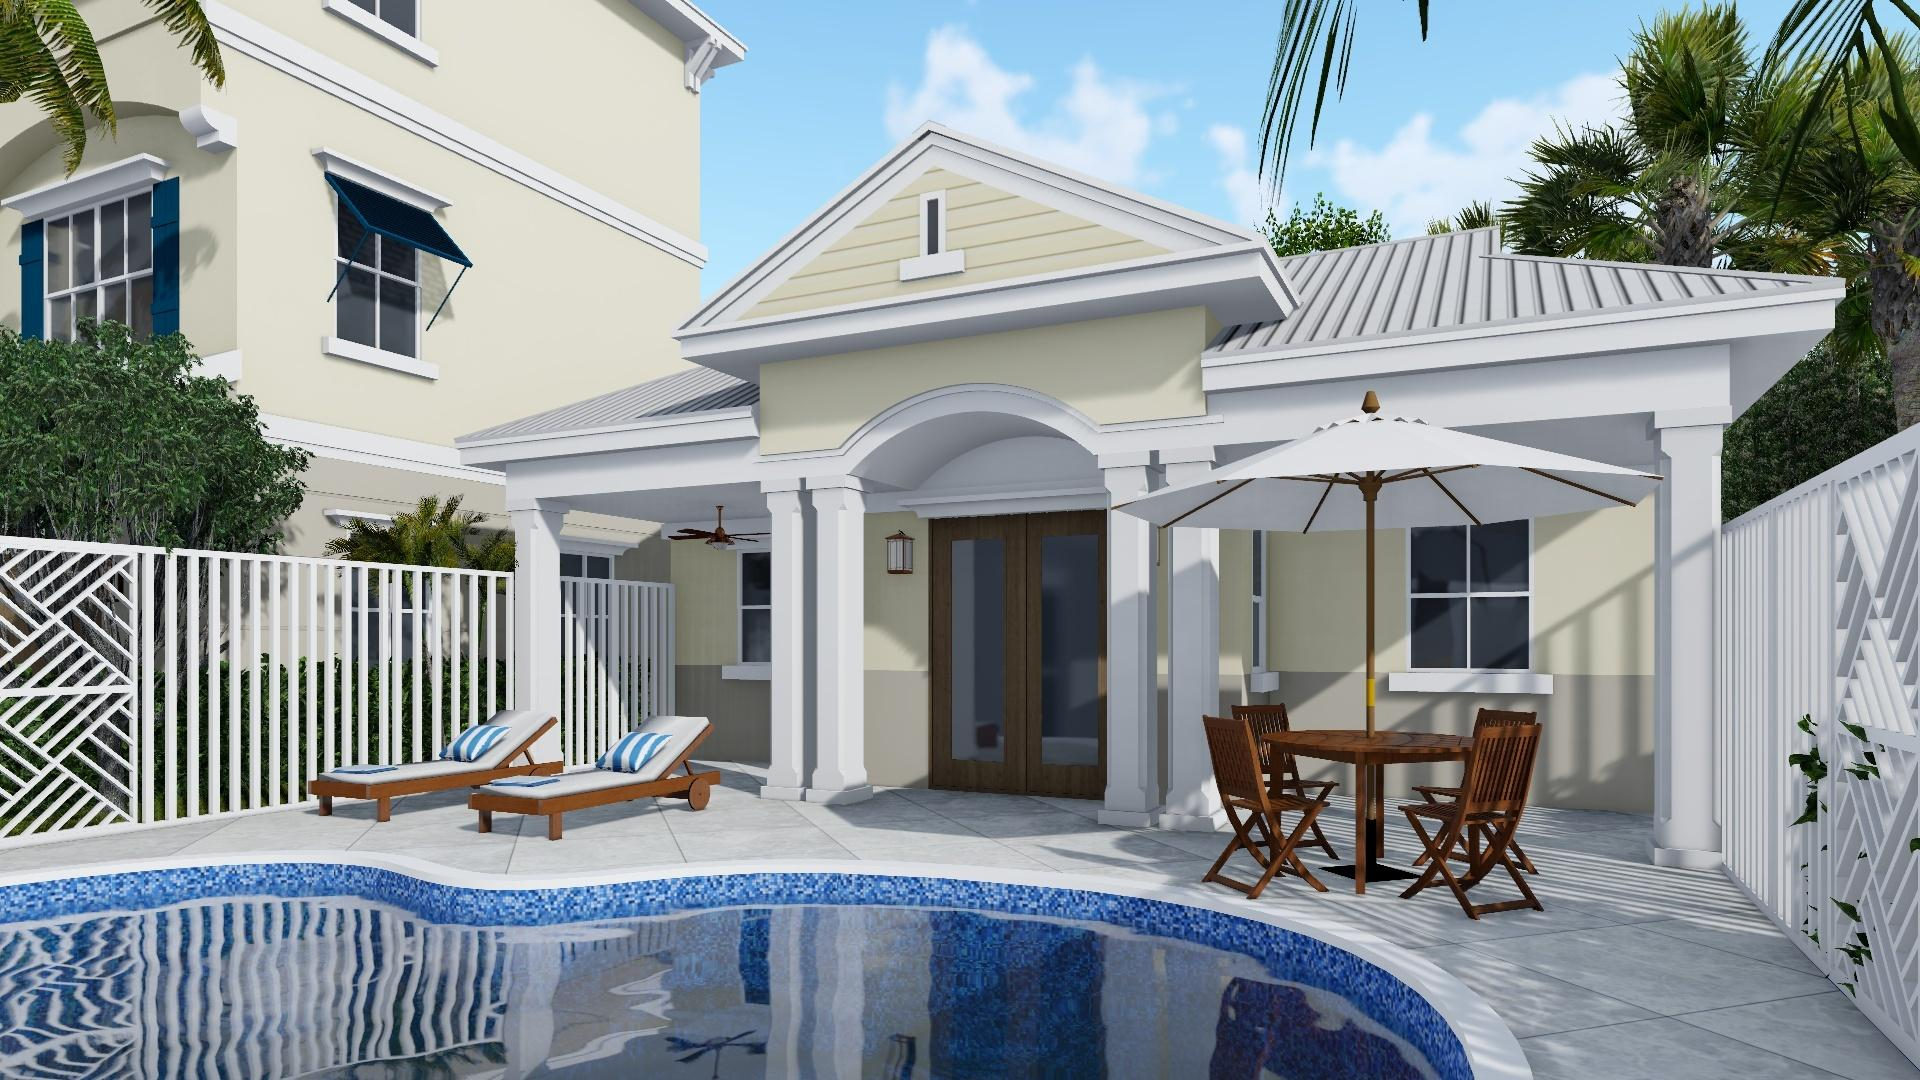 HARBOR VILLAS PAR A K/A ALL OF PLAT